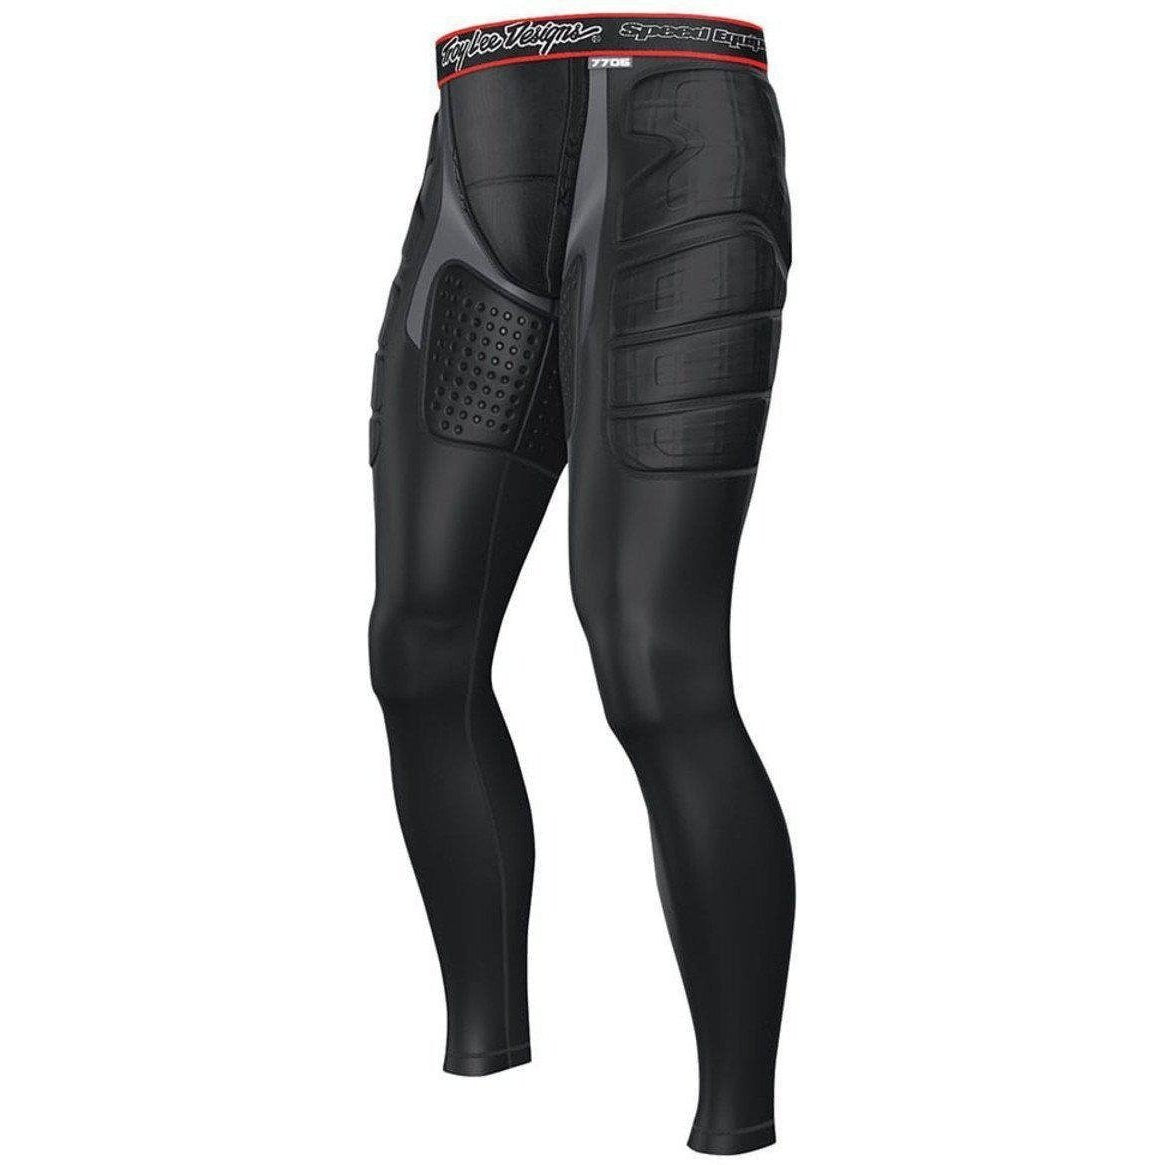 Troy Lee Designs-Troy Lee Designs 7705 Lower Protection Ultra Pants-BLACK-XS-TLD518003204-saddleback-elite-performance-cycling